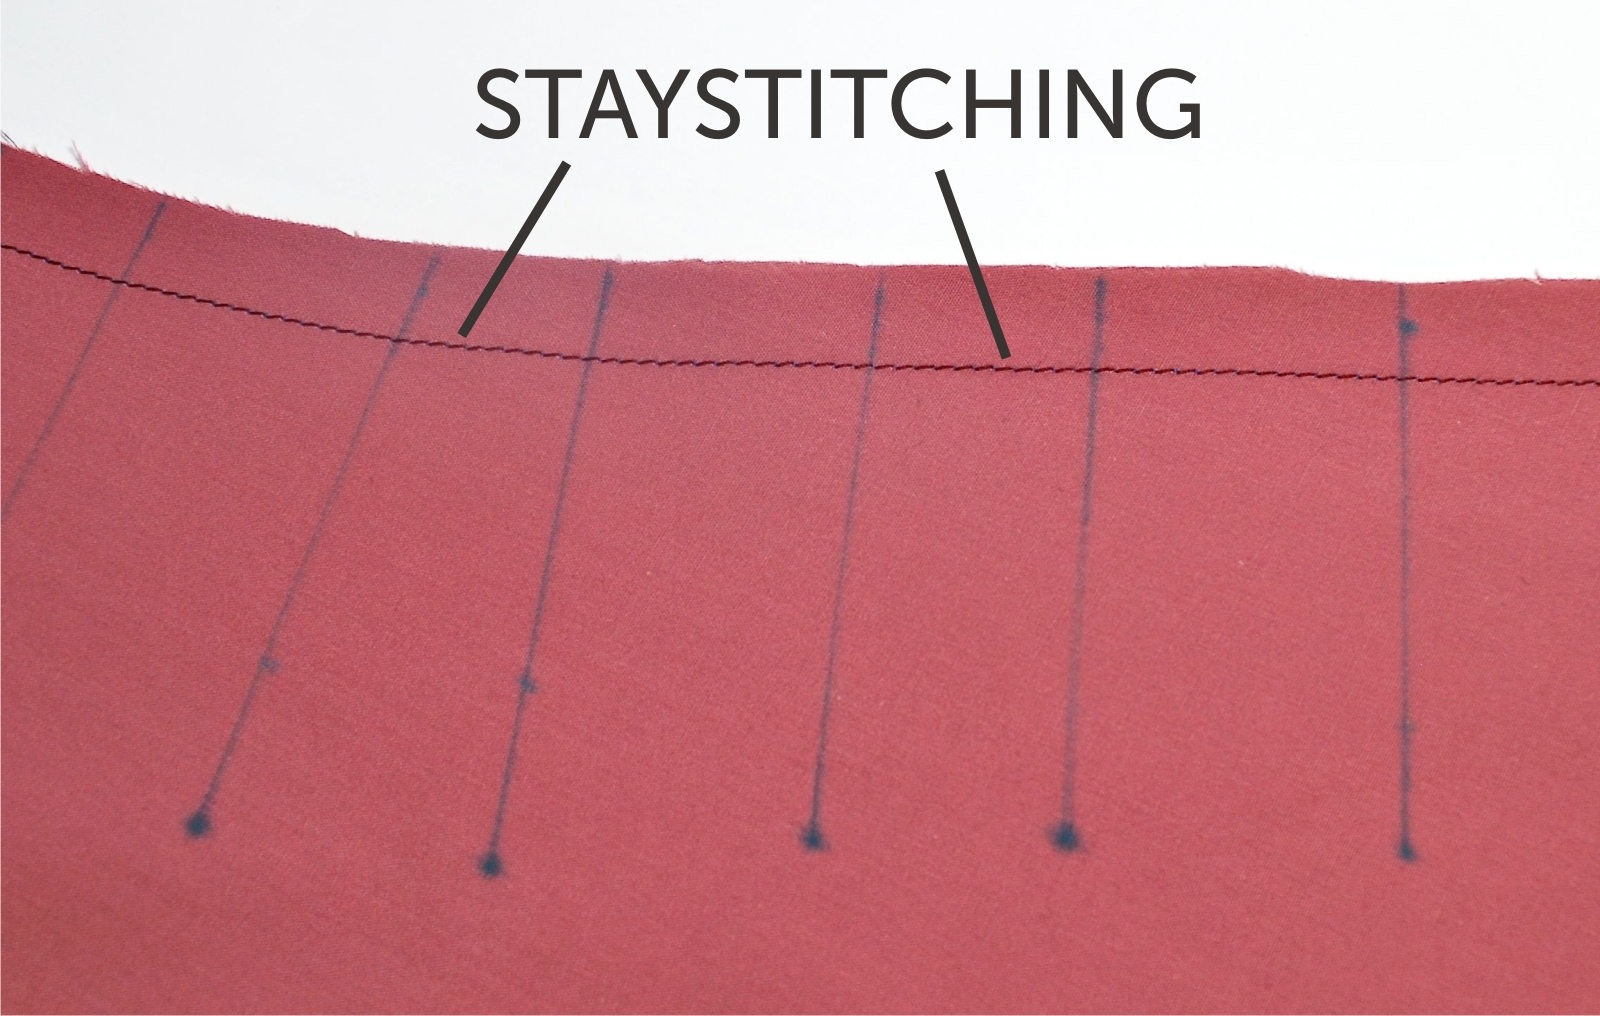 This is the staystiching along the waistline front of version 2. See step one (page 23) in the paper pattern.